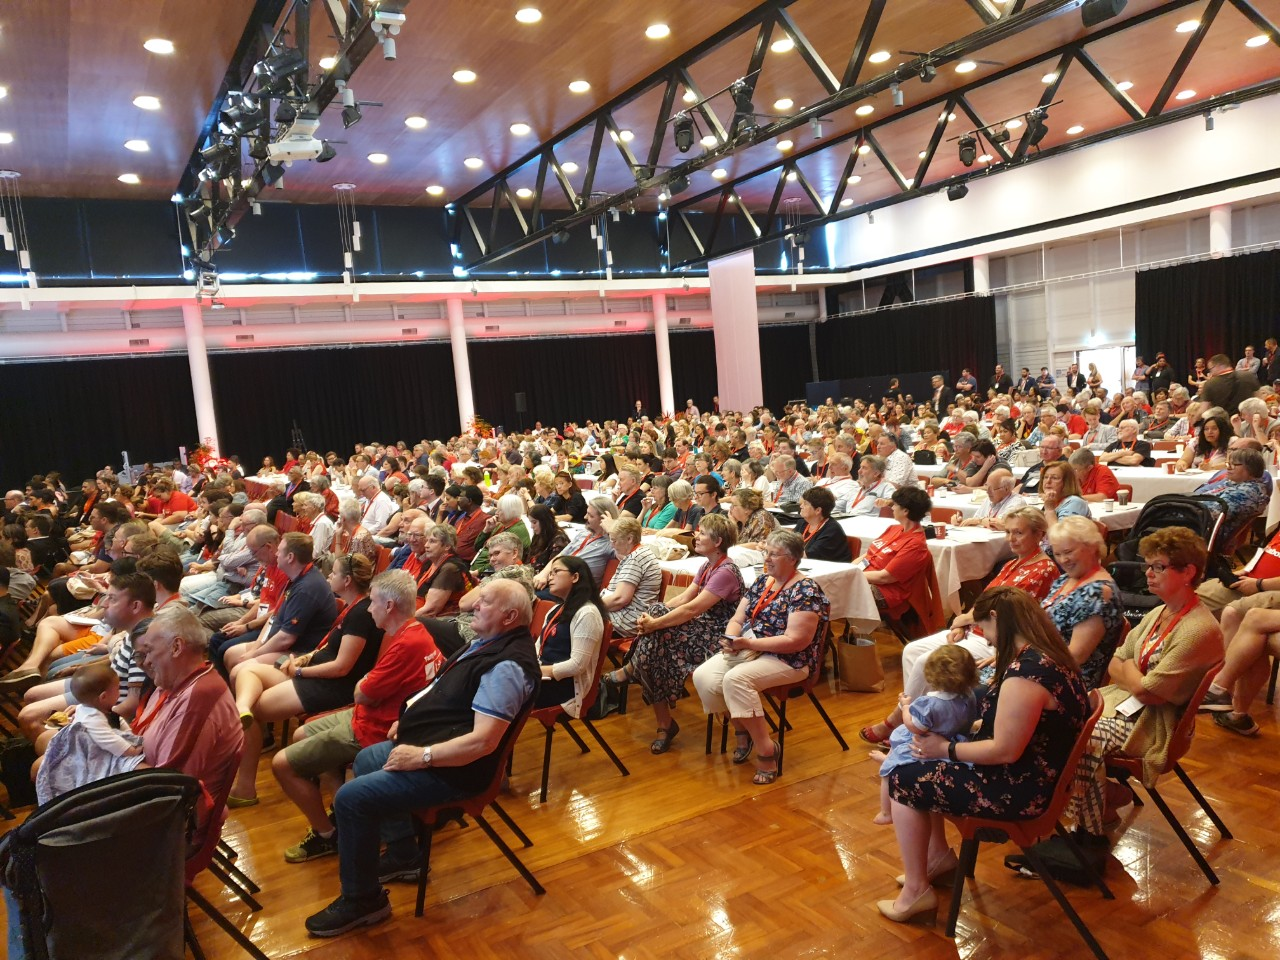 Labour Conference highlights Whanganui's advantages as a conference destination